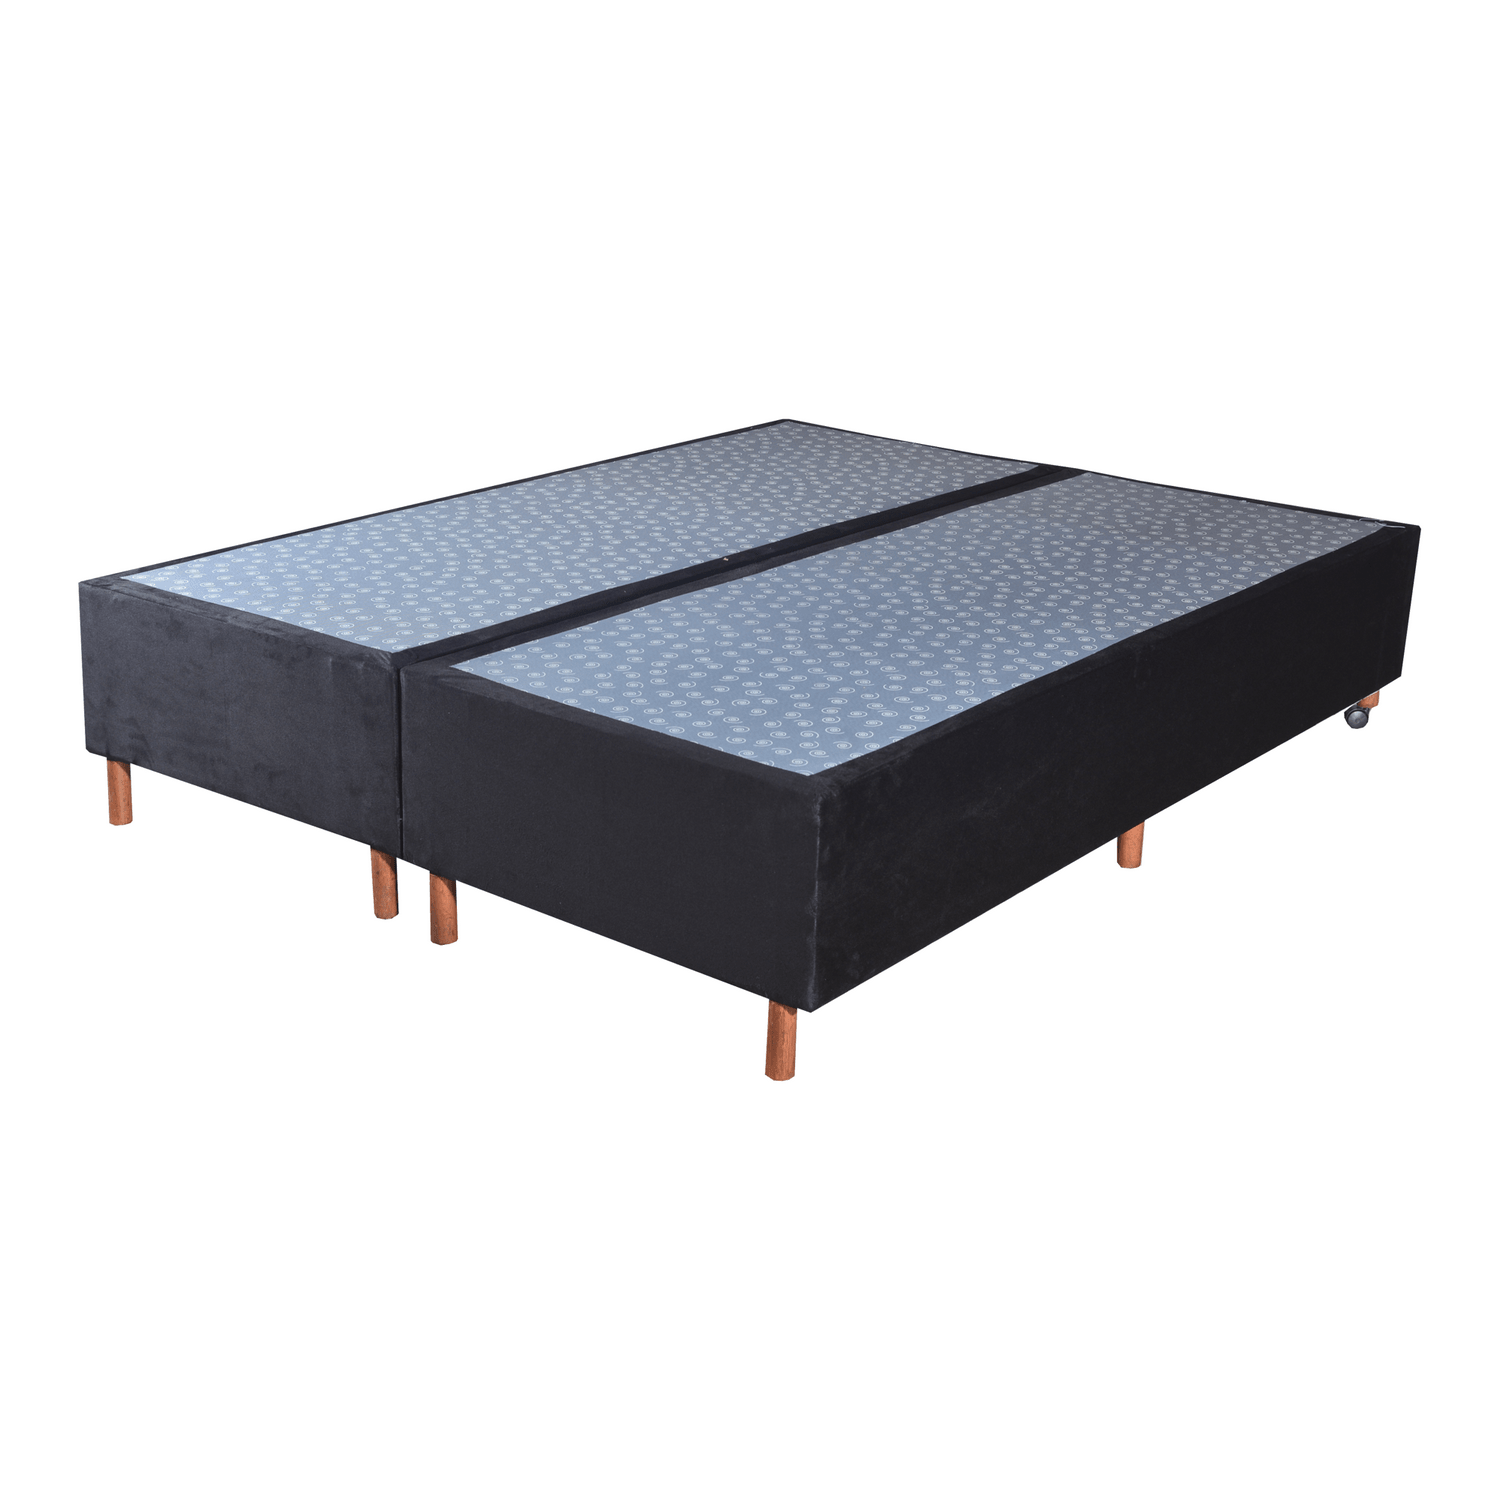 Cama Box Base Queen Veludo Preto 158x198x25